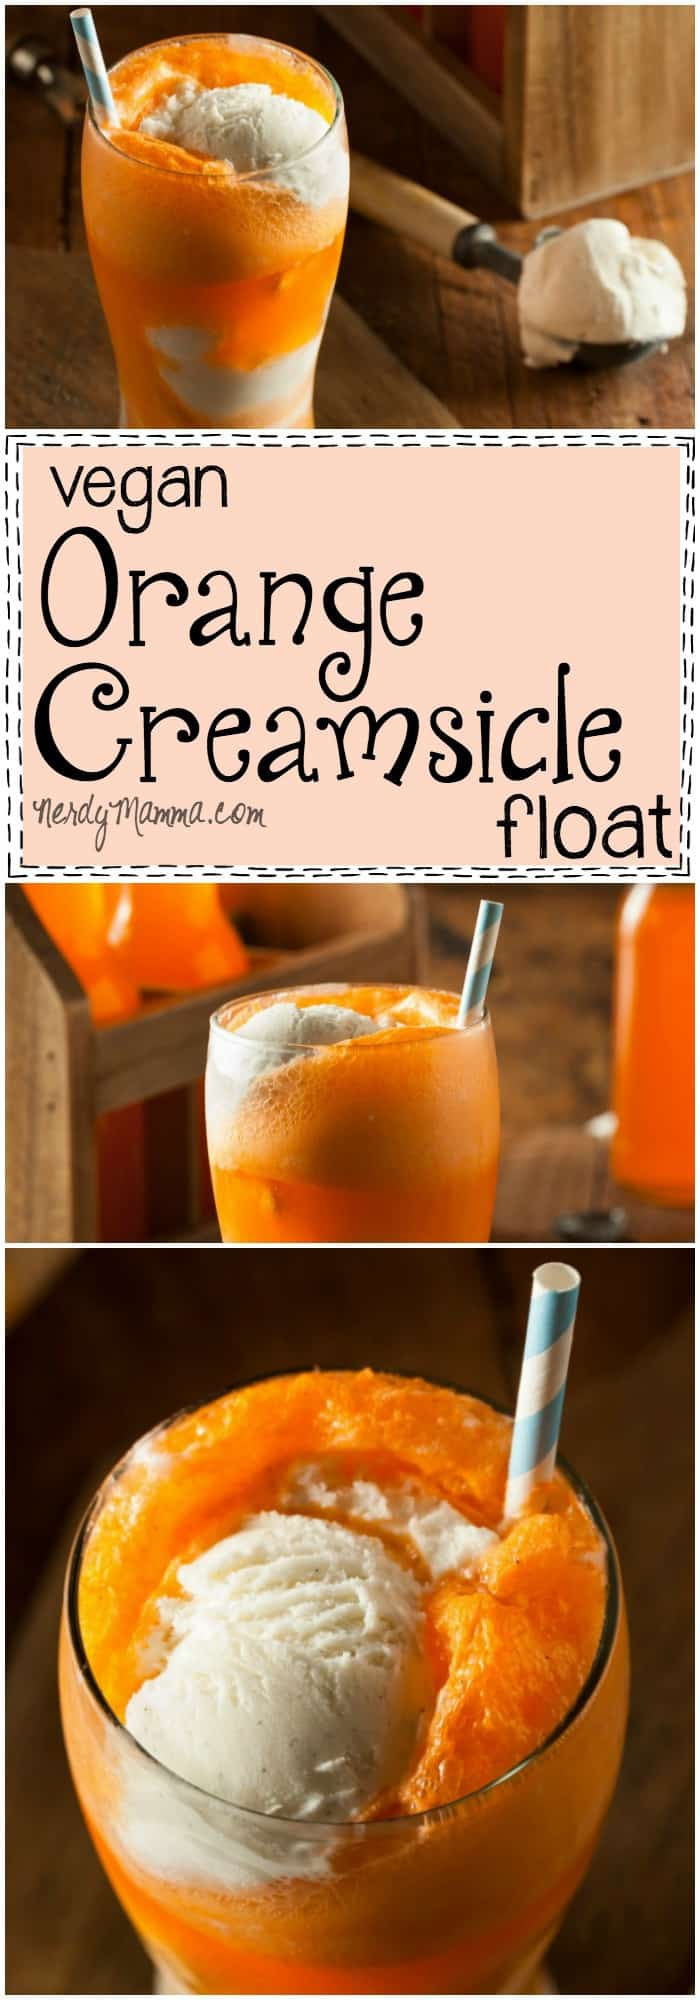 This recipe for Vegan Orange Creamsicle float is just so awesome! I mean--I thought I'd never get that awesome, yummy, creamy flavor again...but now! LOVE!